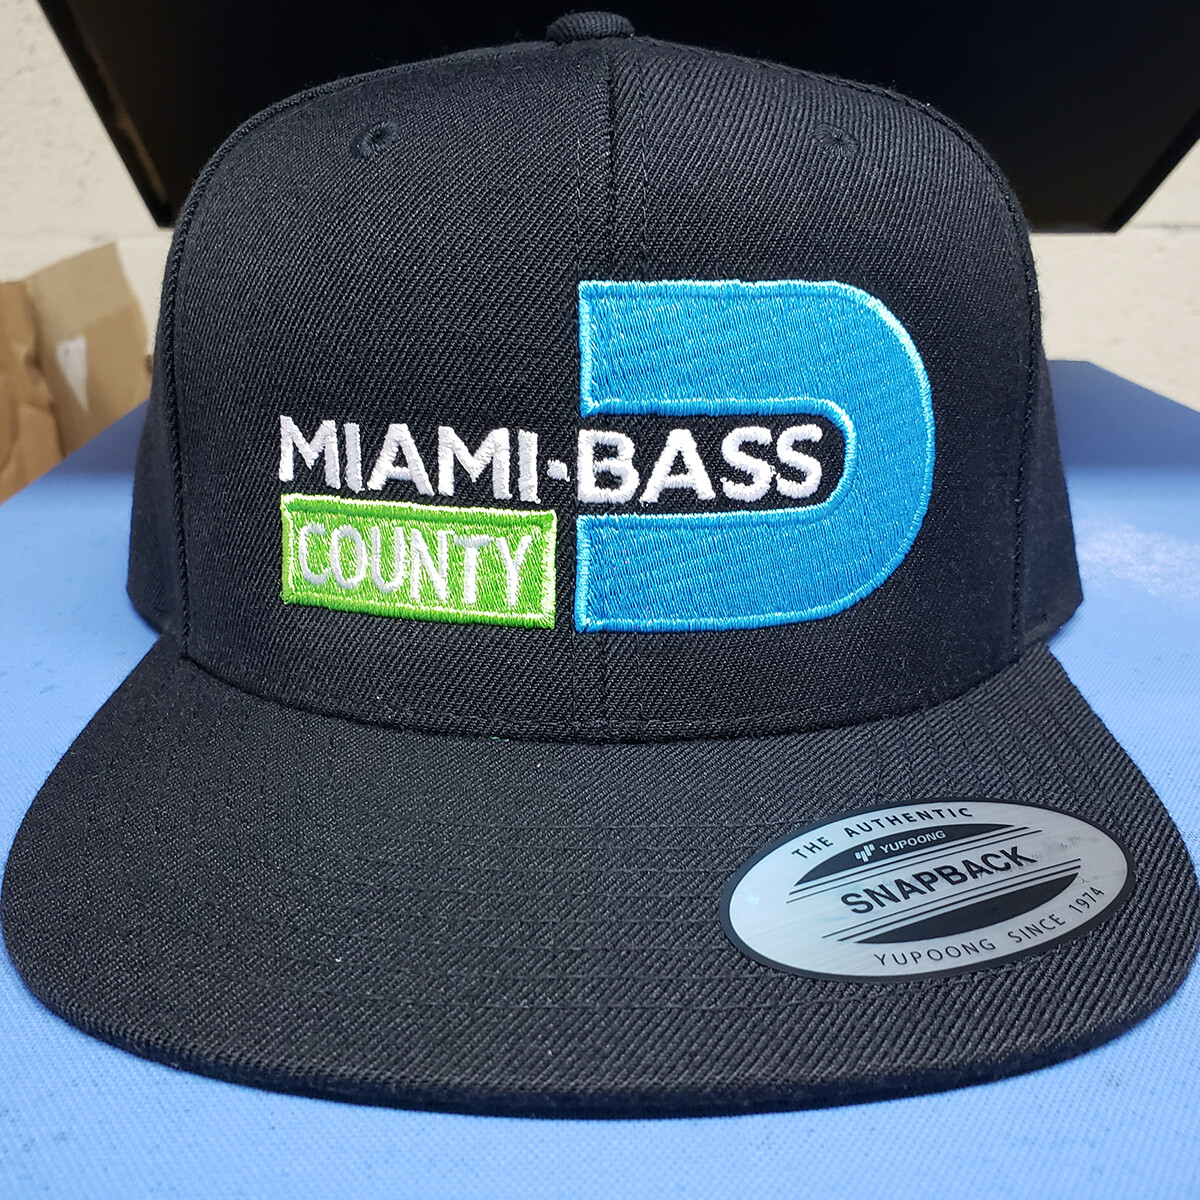 Miami Bass County Snapback